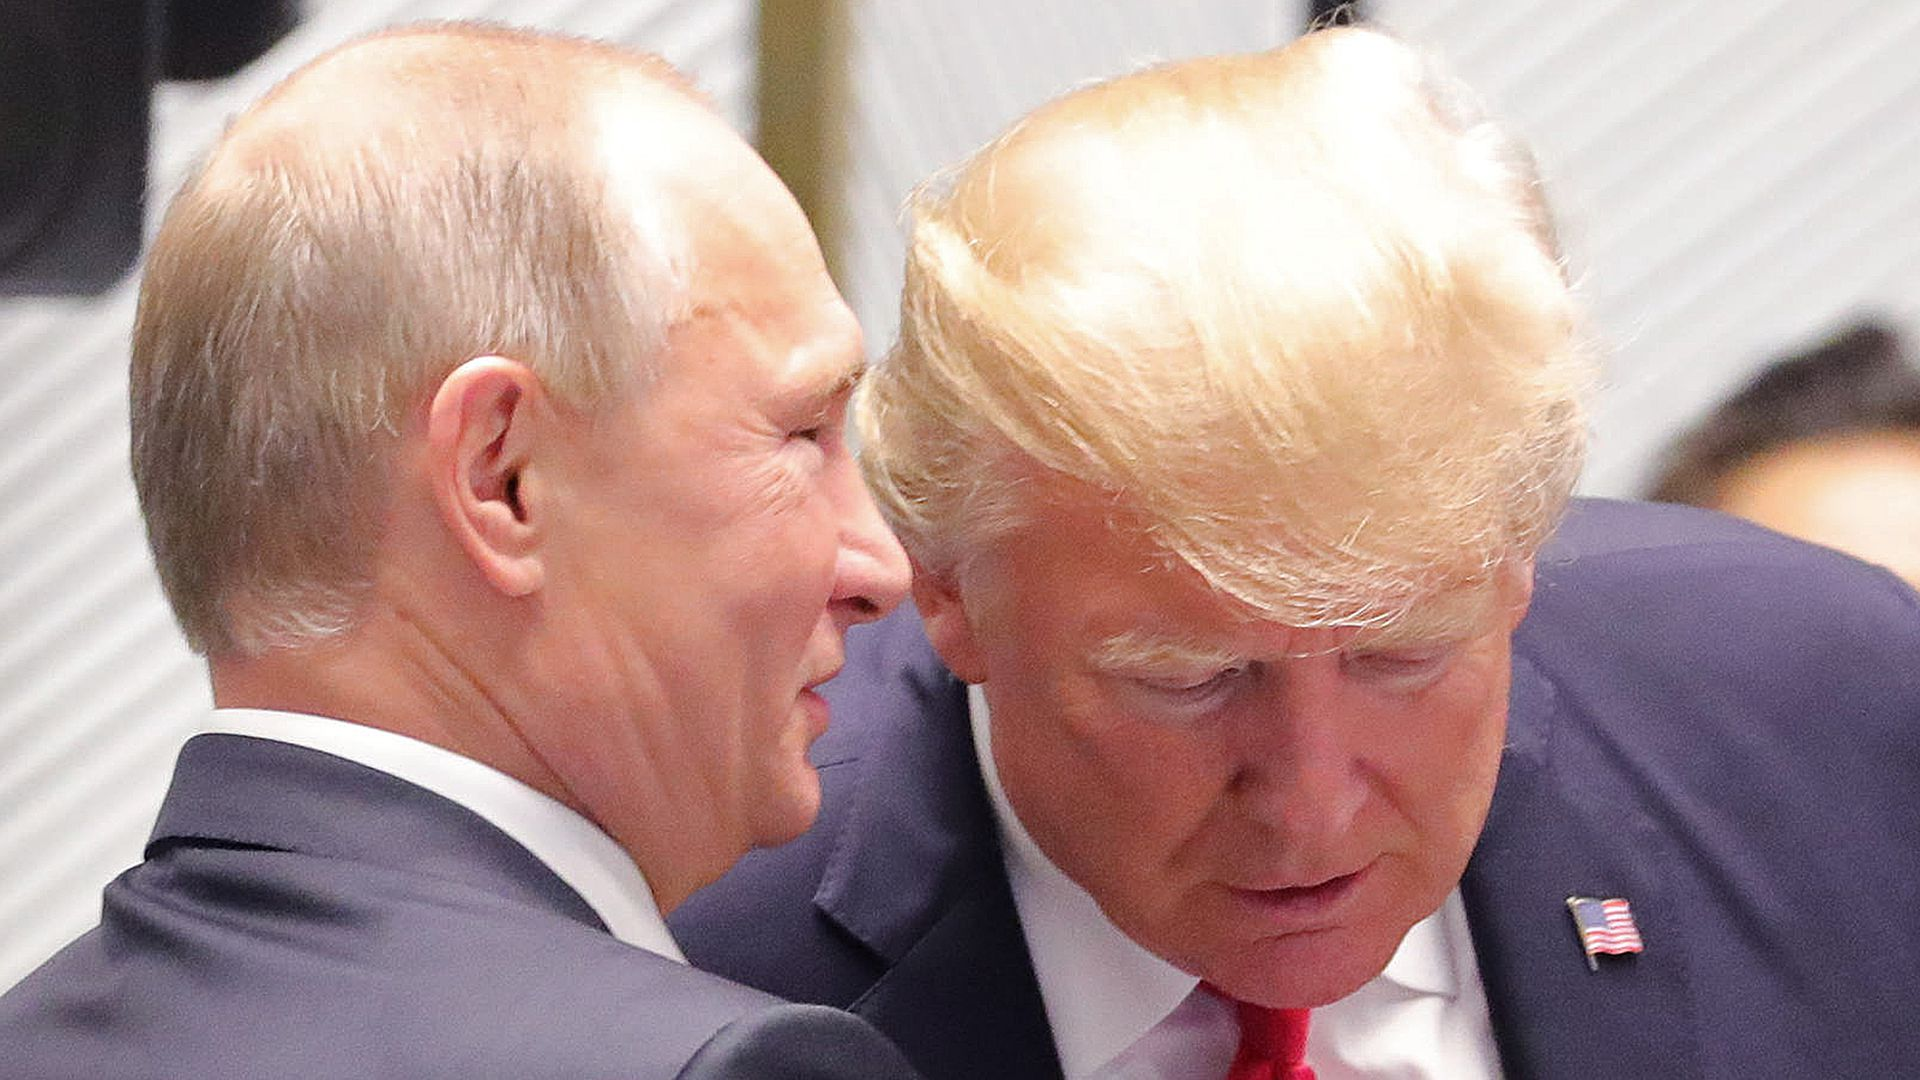 Vladimir Putin whispering to Donald Trump during a meeting of world leaders.